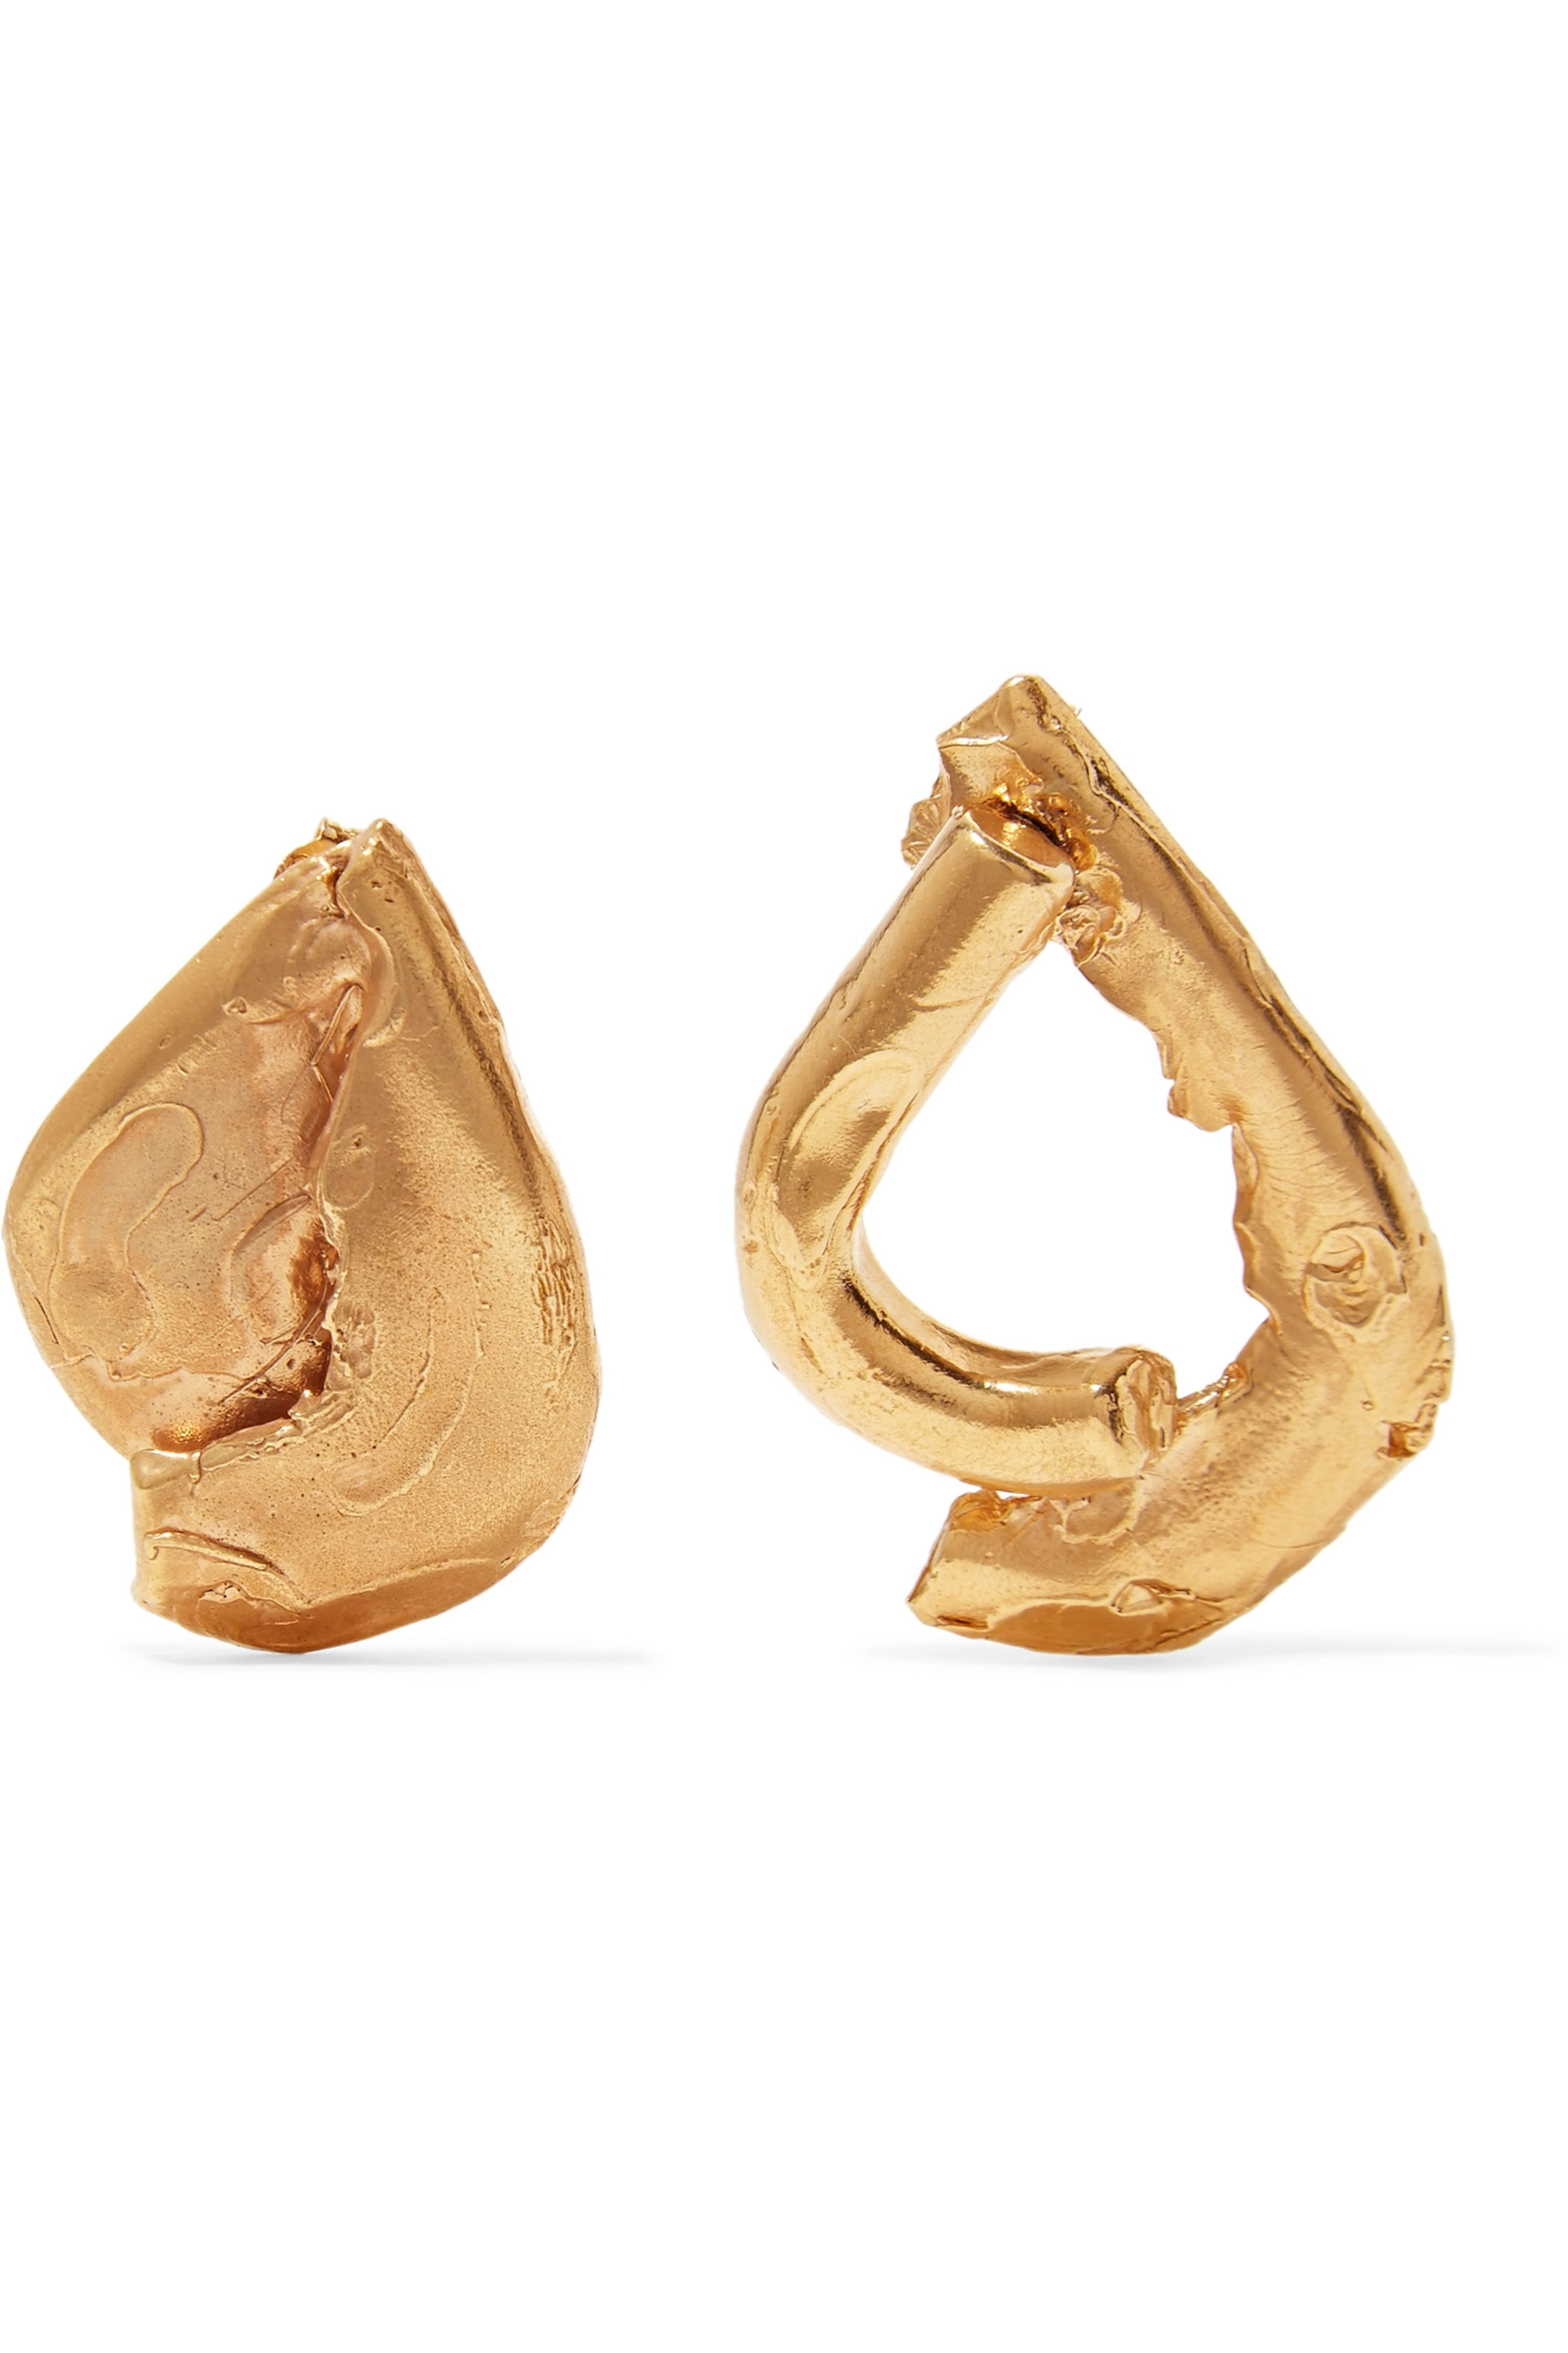 Alighieri Warrior gold-plated earrings